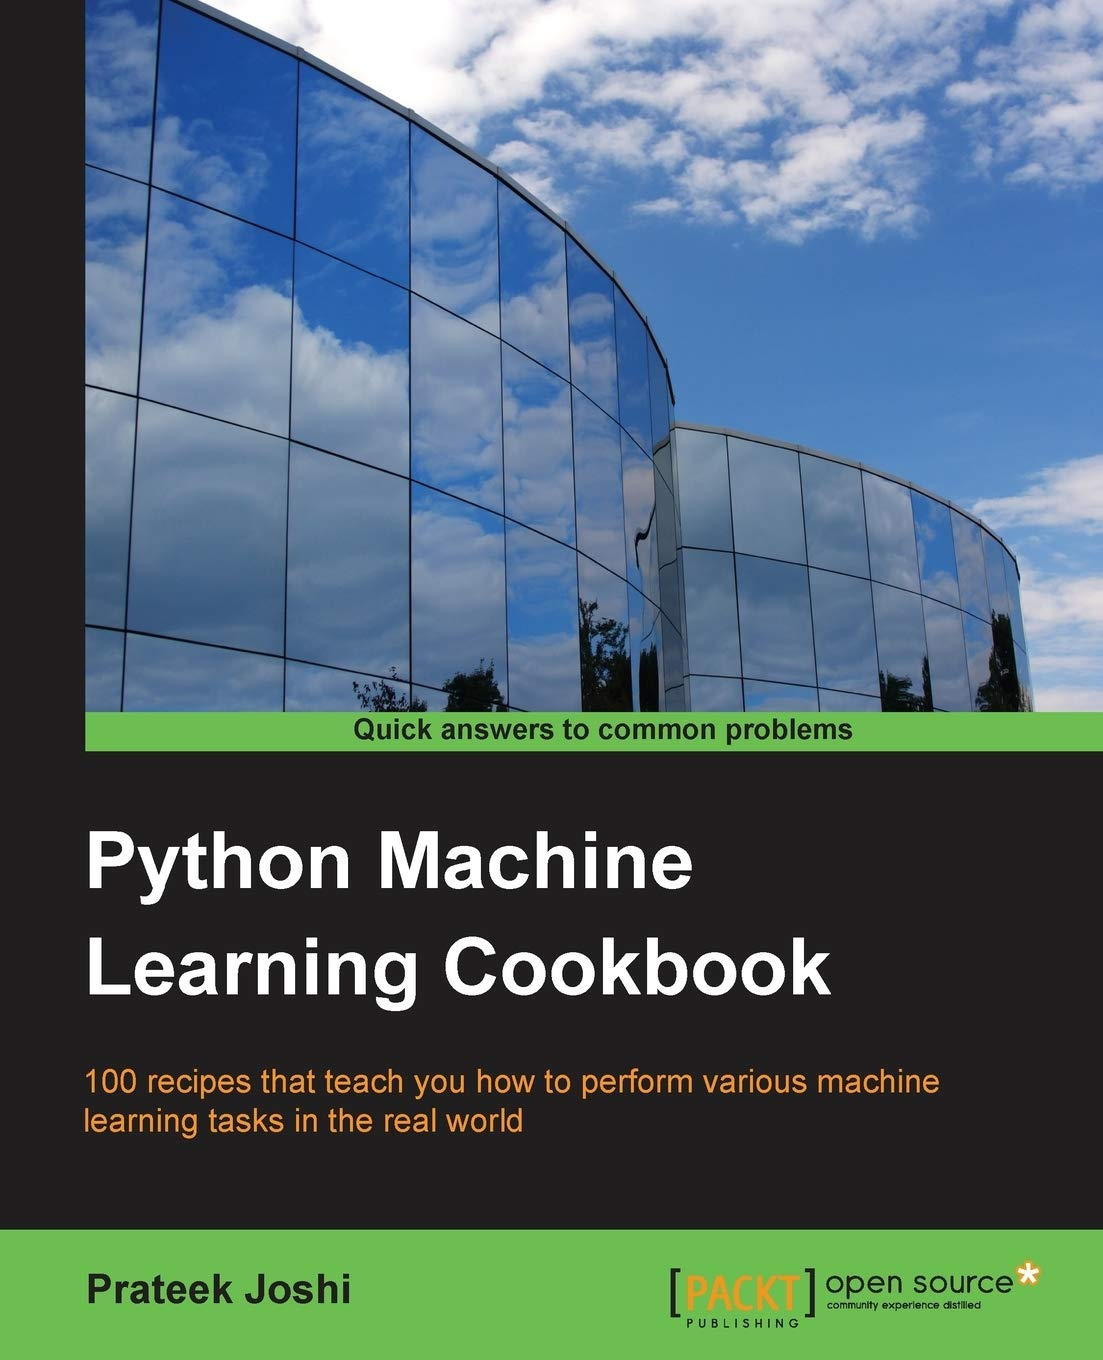 Python Machine Learning Cookbook: 100 recipes that teach you how to perform various machine learning tasks in the real world